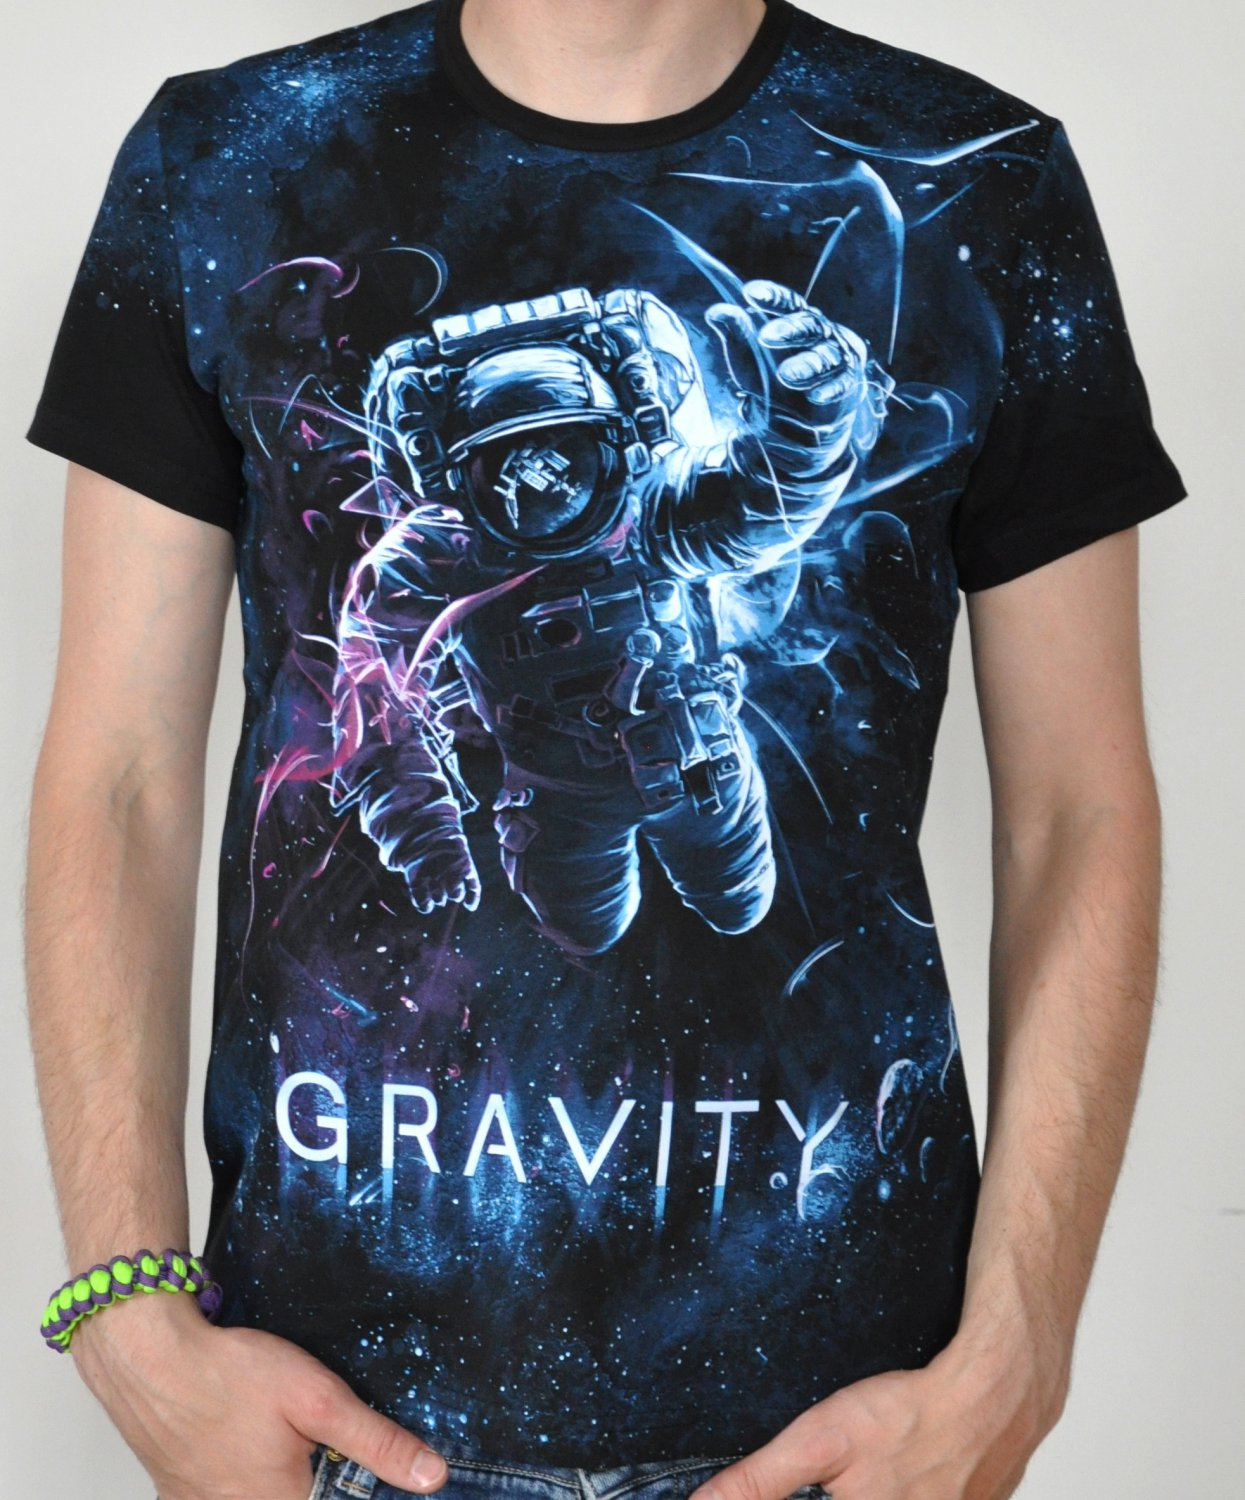 Astronaut rave psychedelic tshirt Glow under UV black light  psy trance lsd gravity space